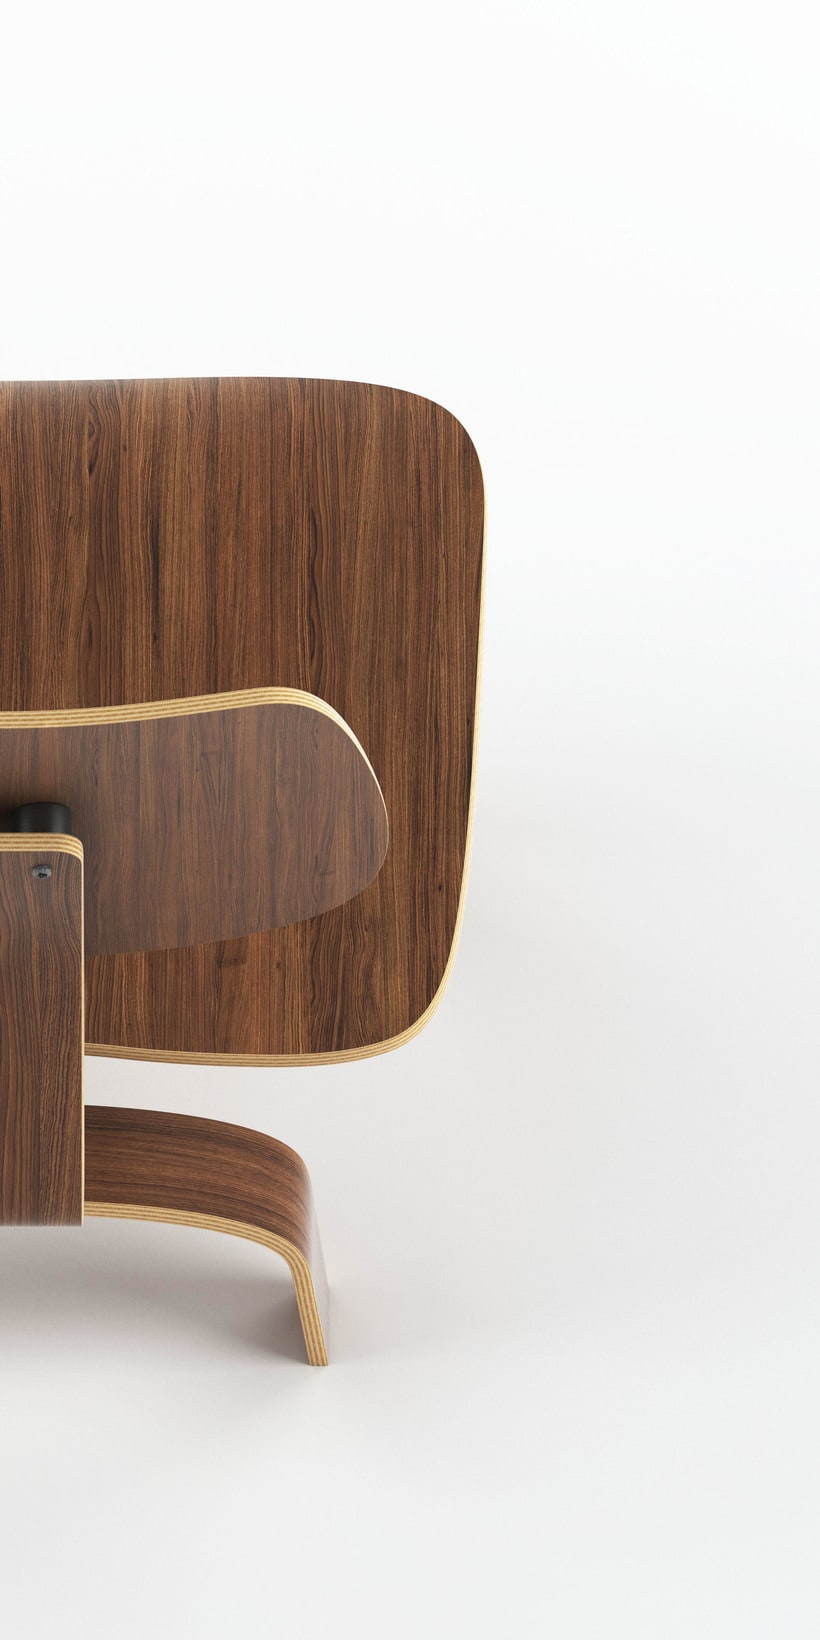 Eames Wood Chair 0